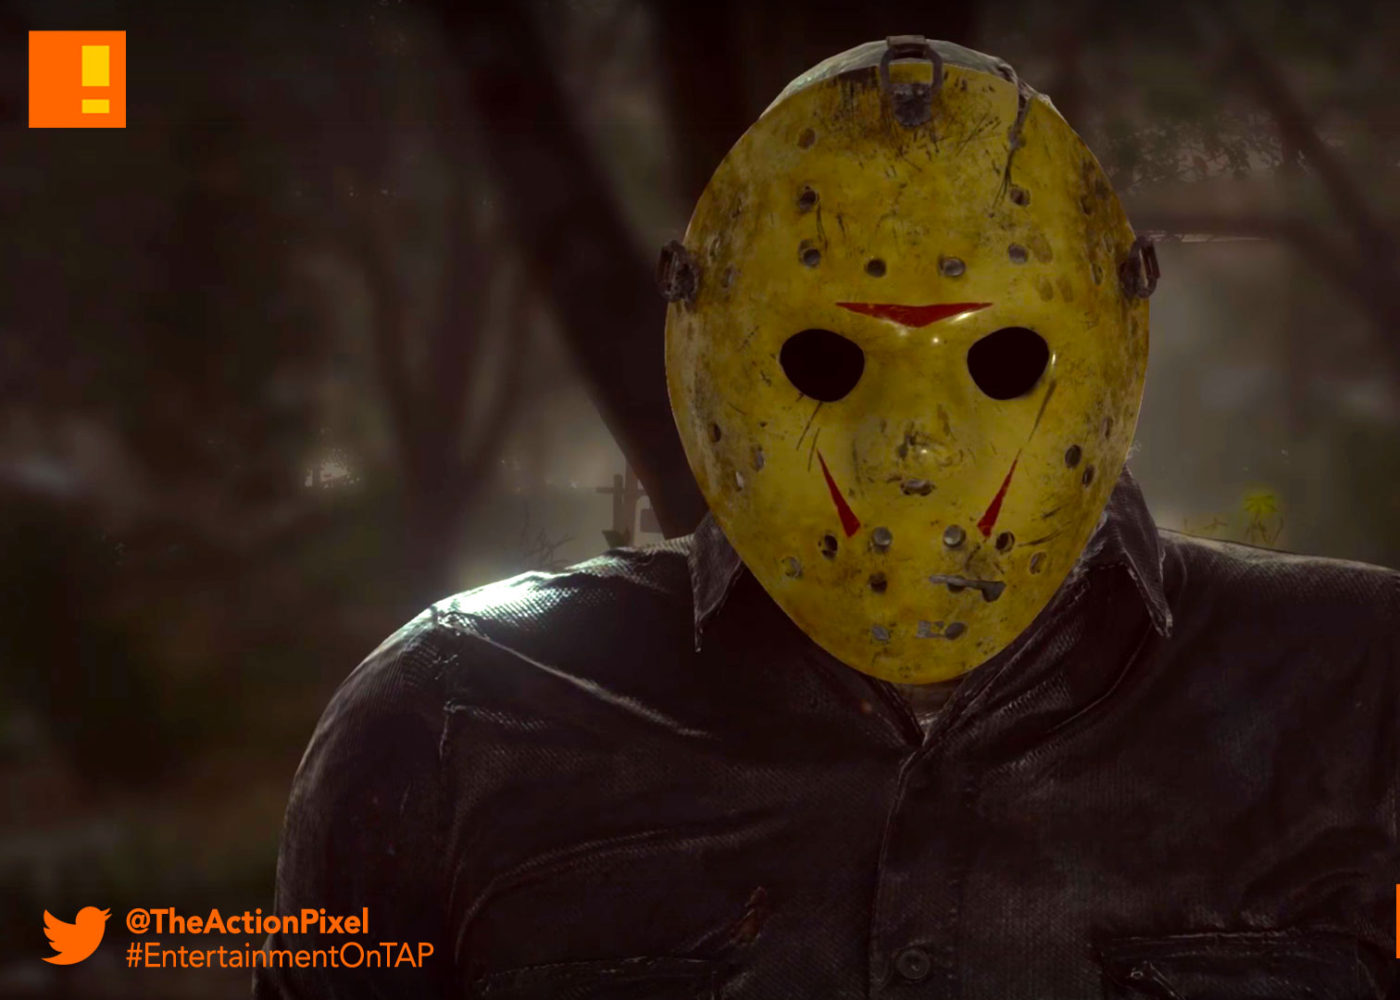 FRIDAY THE 13, JASON VOORHEES, ill fonic, friday the 13th: the game, friday the 13th, gun media, trailer, launch date, announcement,